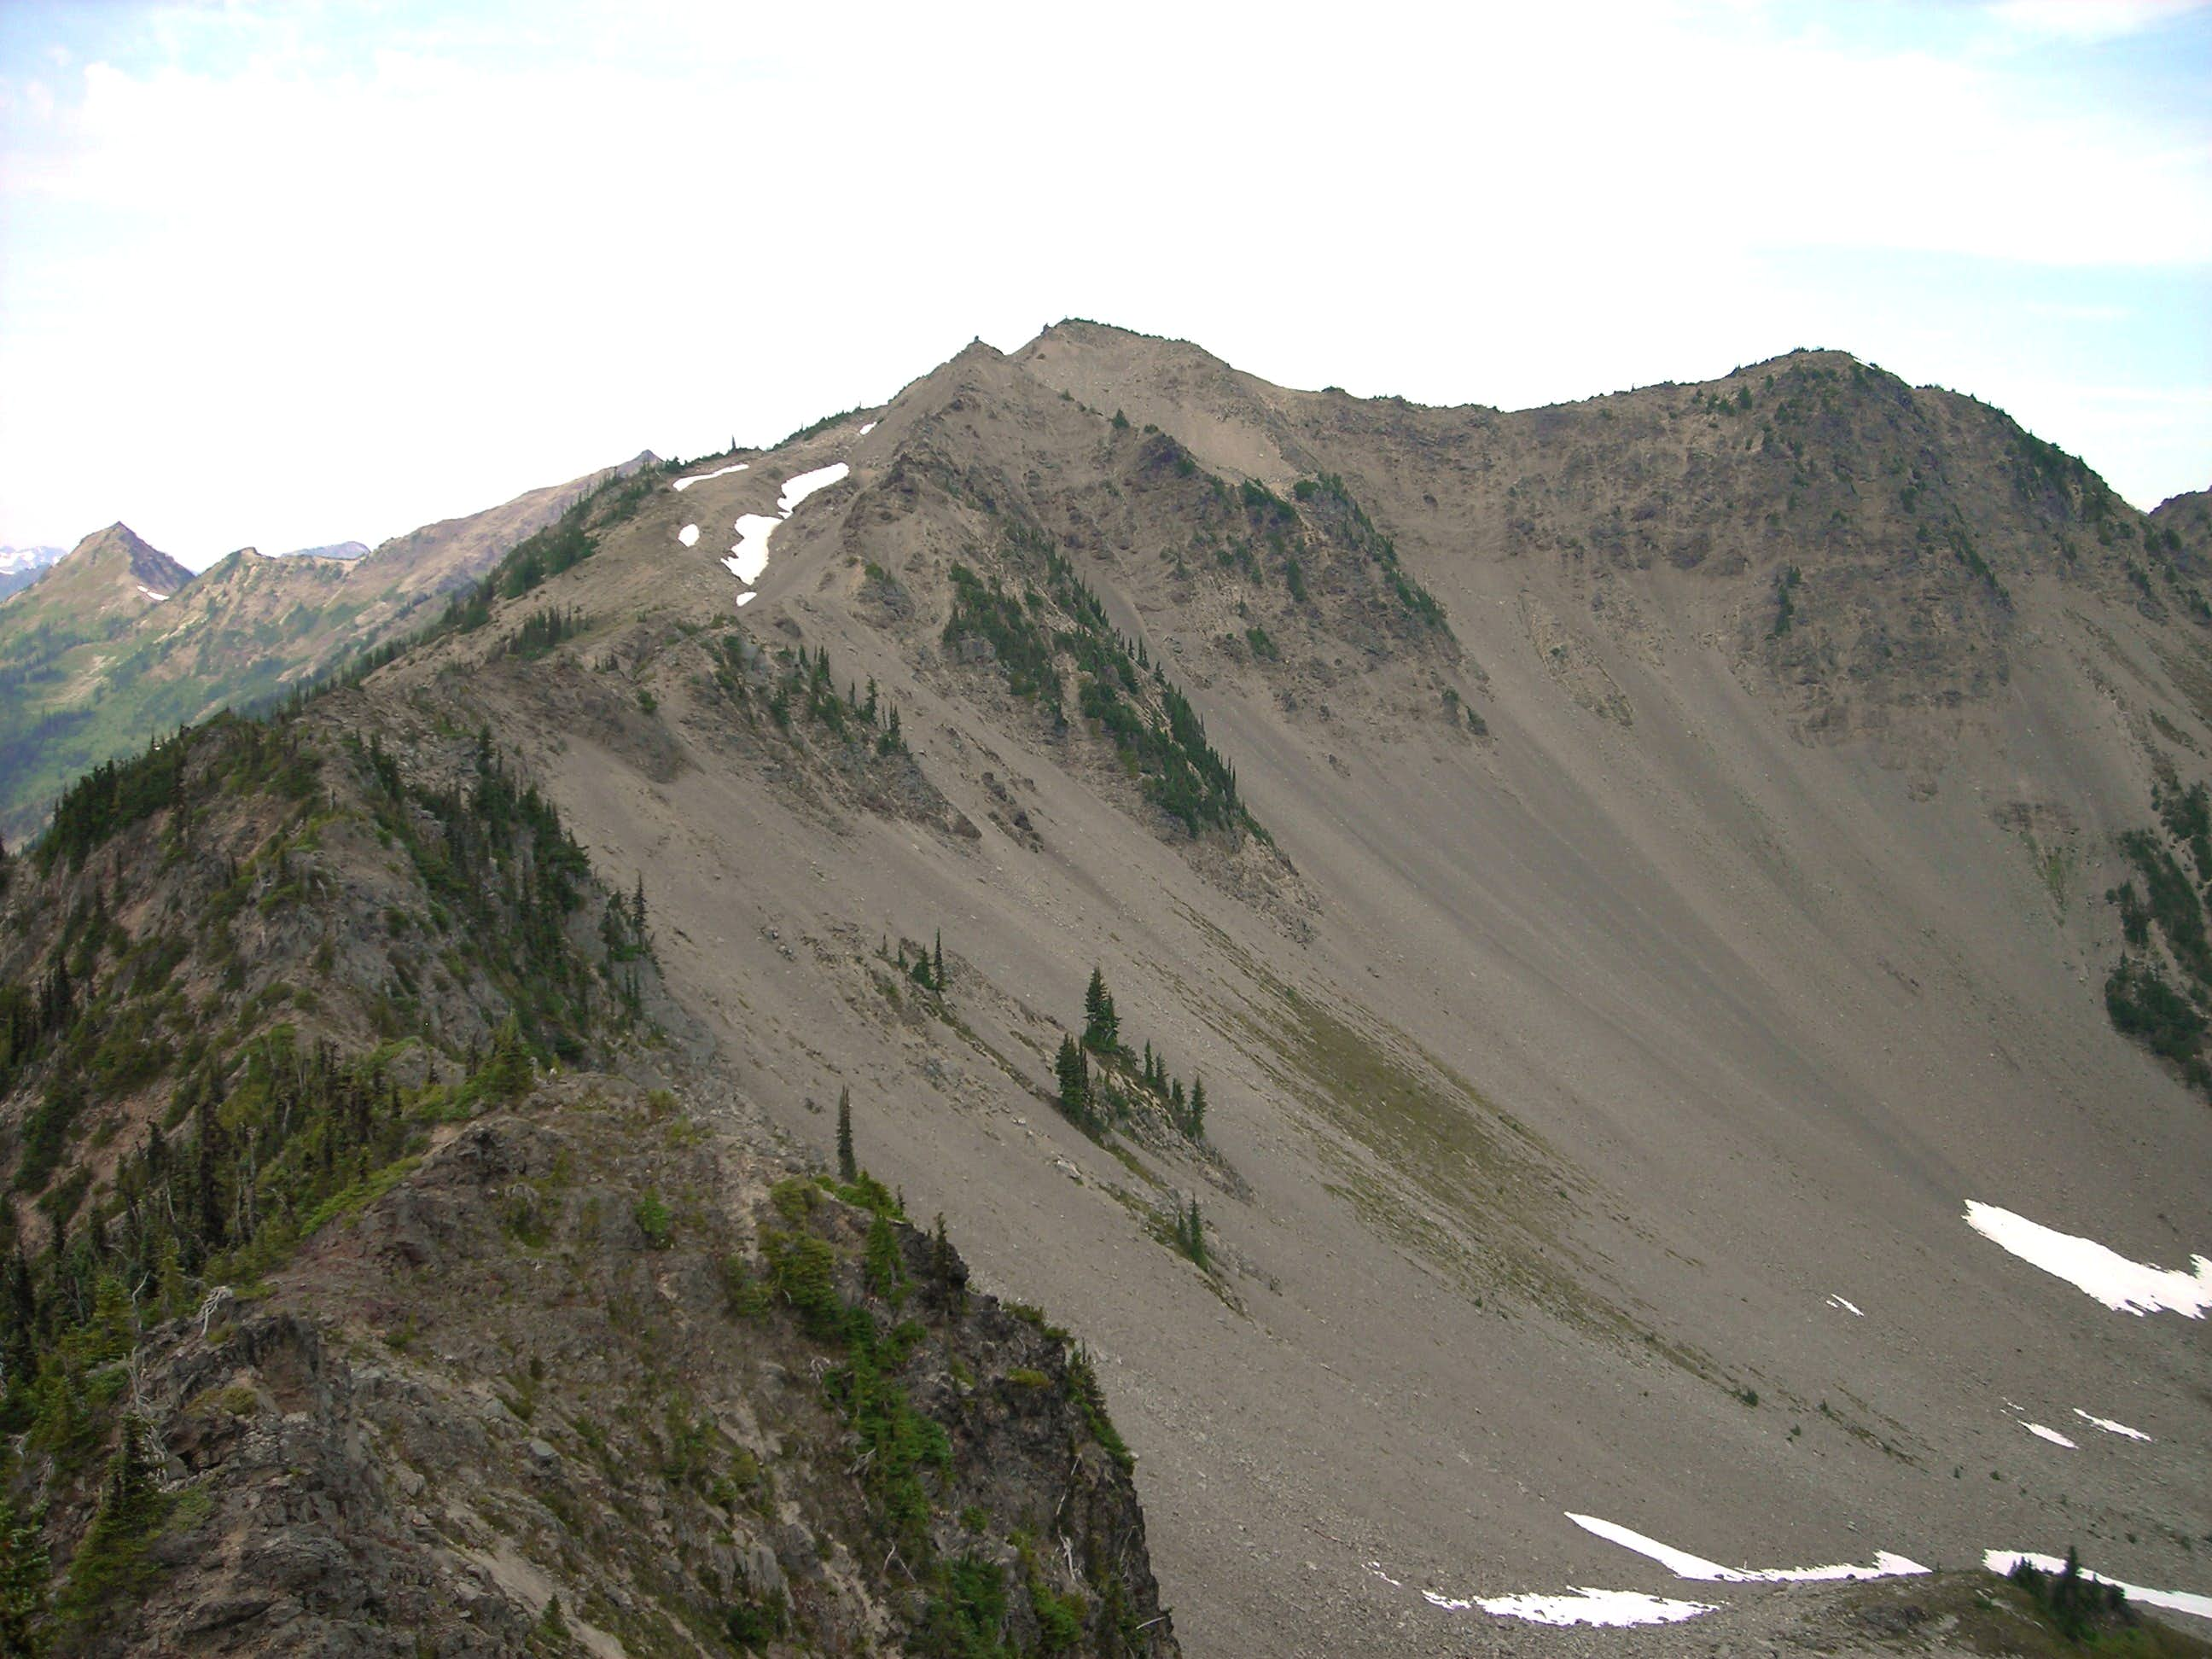 West Wellesley Peak